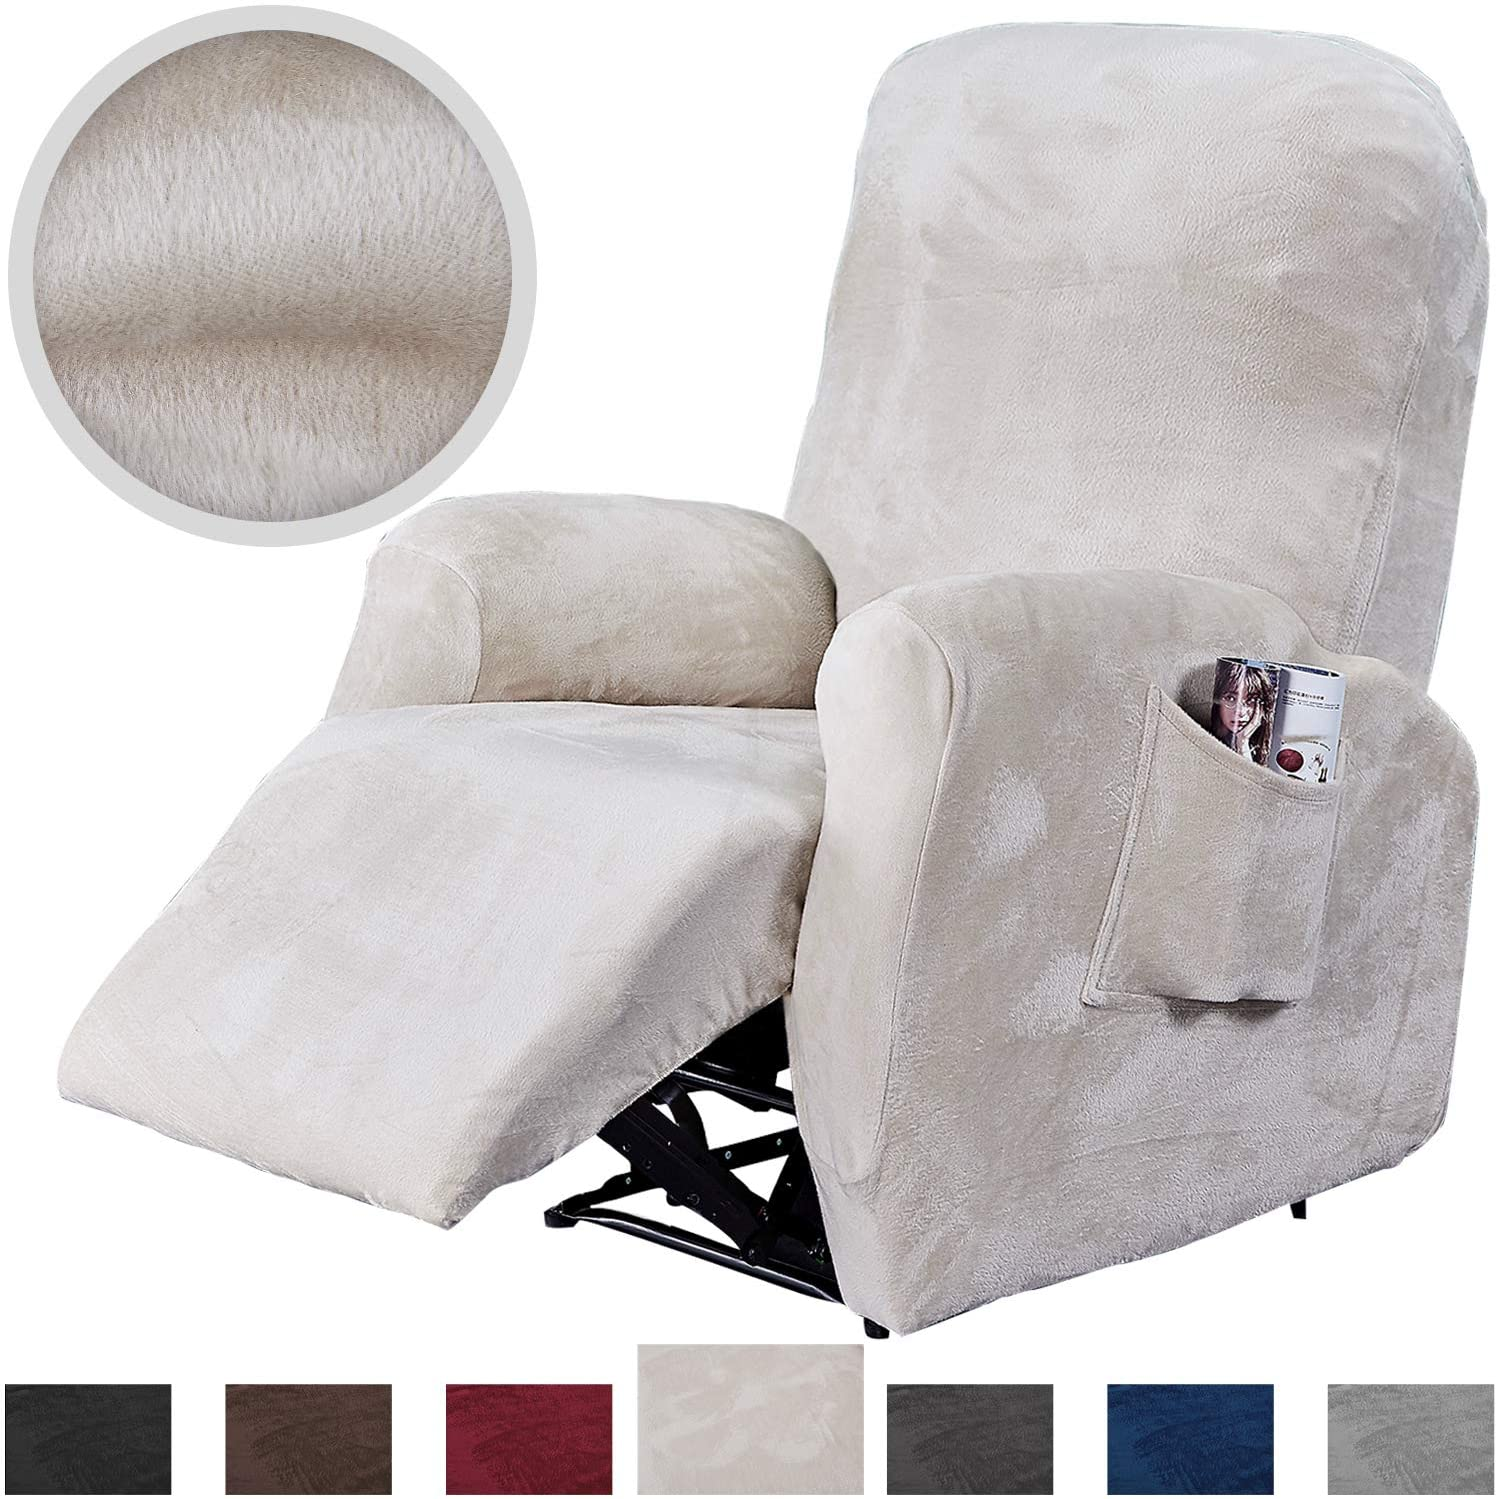 Rose Home Fashion Recliner Chair Slipcover